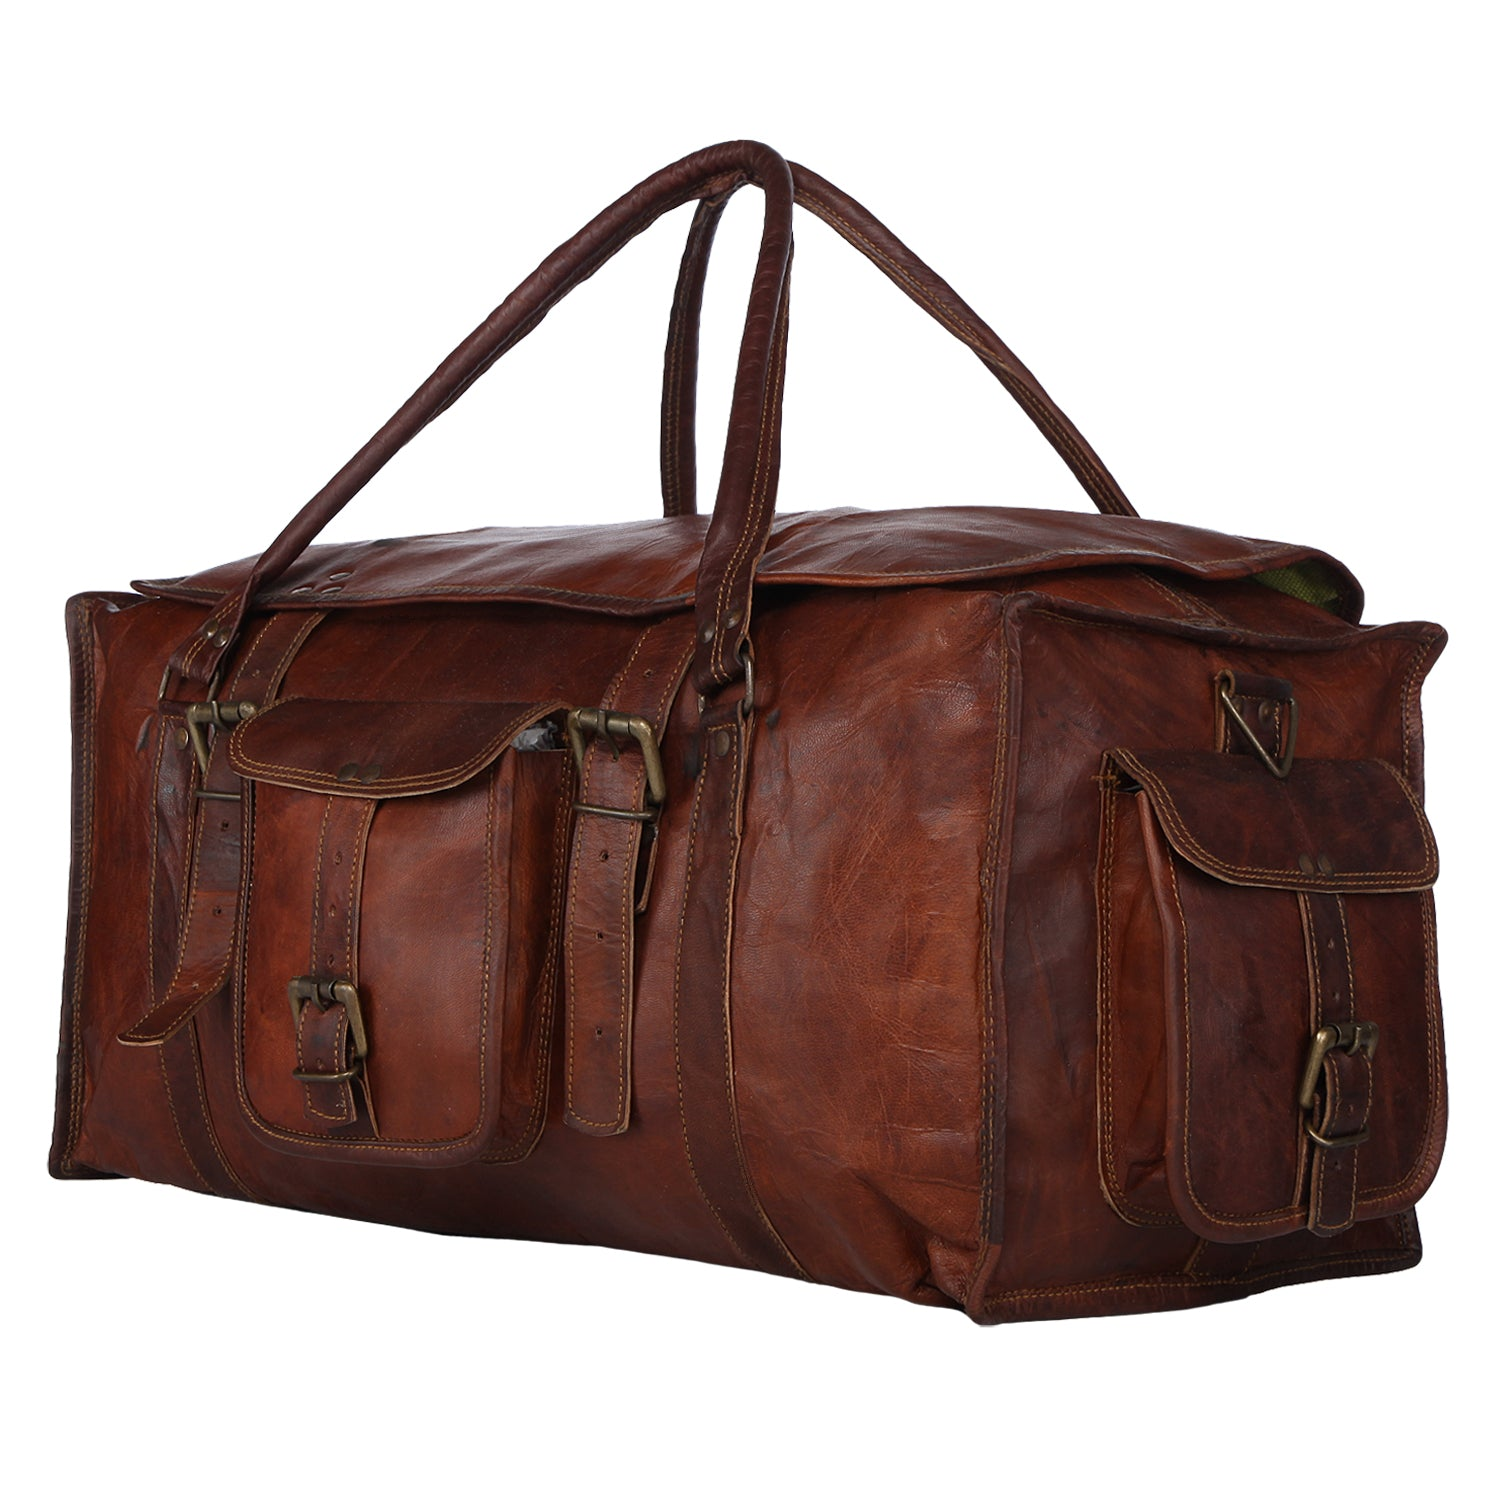 f6d5a6f62 Handcrafted Leather Duffel Bag | High On Leather